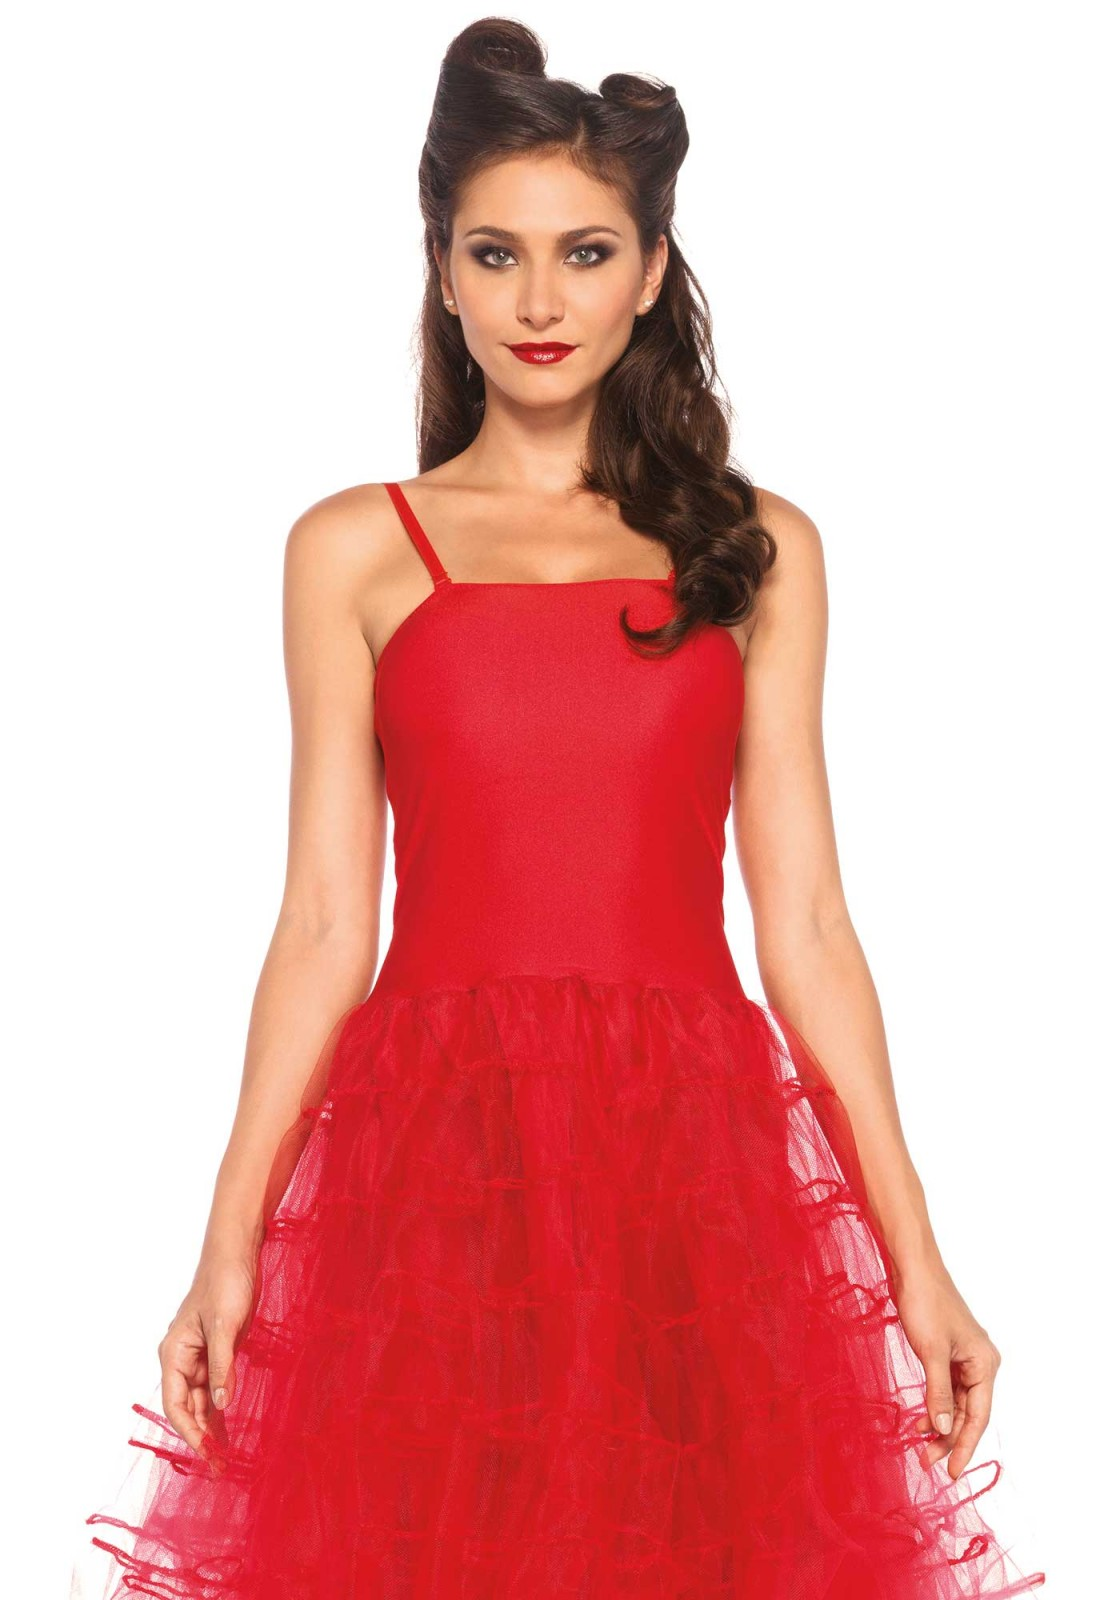 This rockabilly swing dress takes you back to the 50s. This dress has a tulle skirt and optional straps and can be worn with several accessories kits. Please take not that the gloves are note included. The length of size S, measured from the shoulder is 96cm / 38inch. The model has a length of 178 cm/ 70 inch and is wearing a size S. This dress comes with adjustable straps.